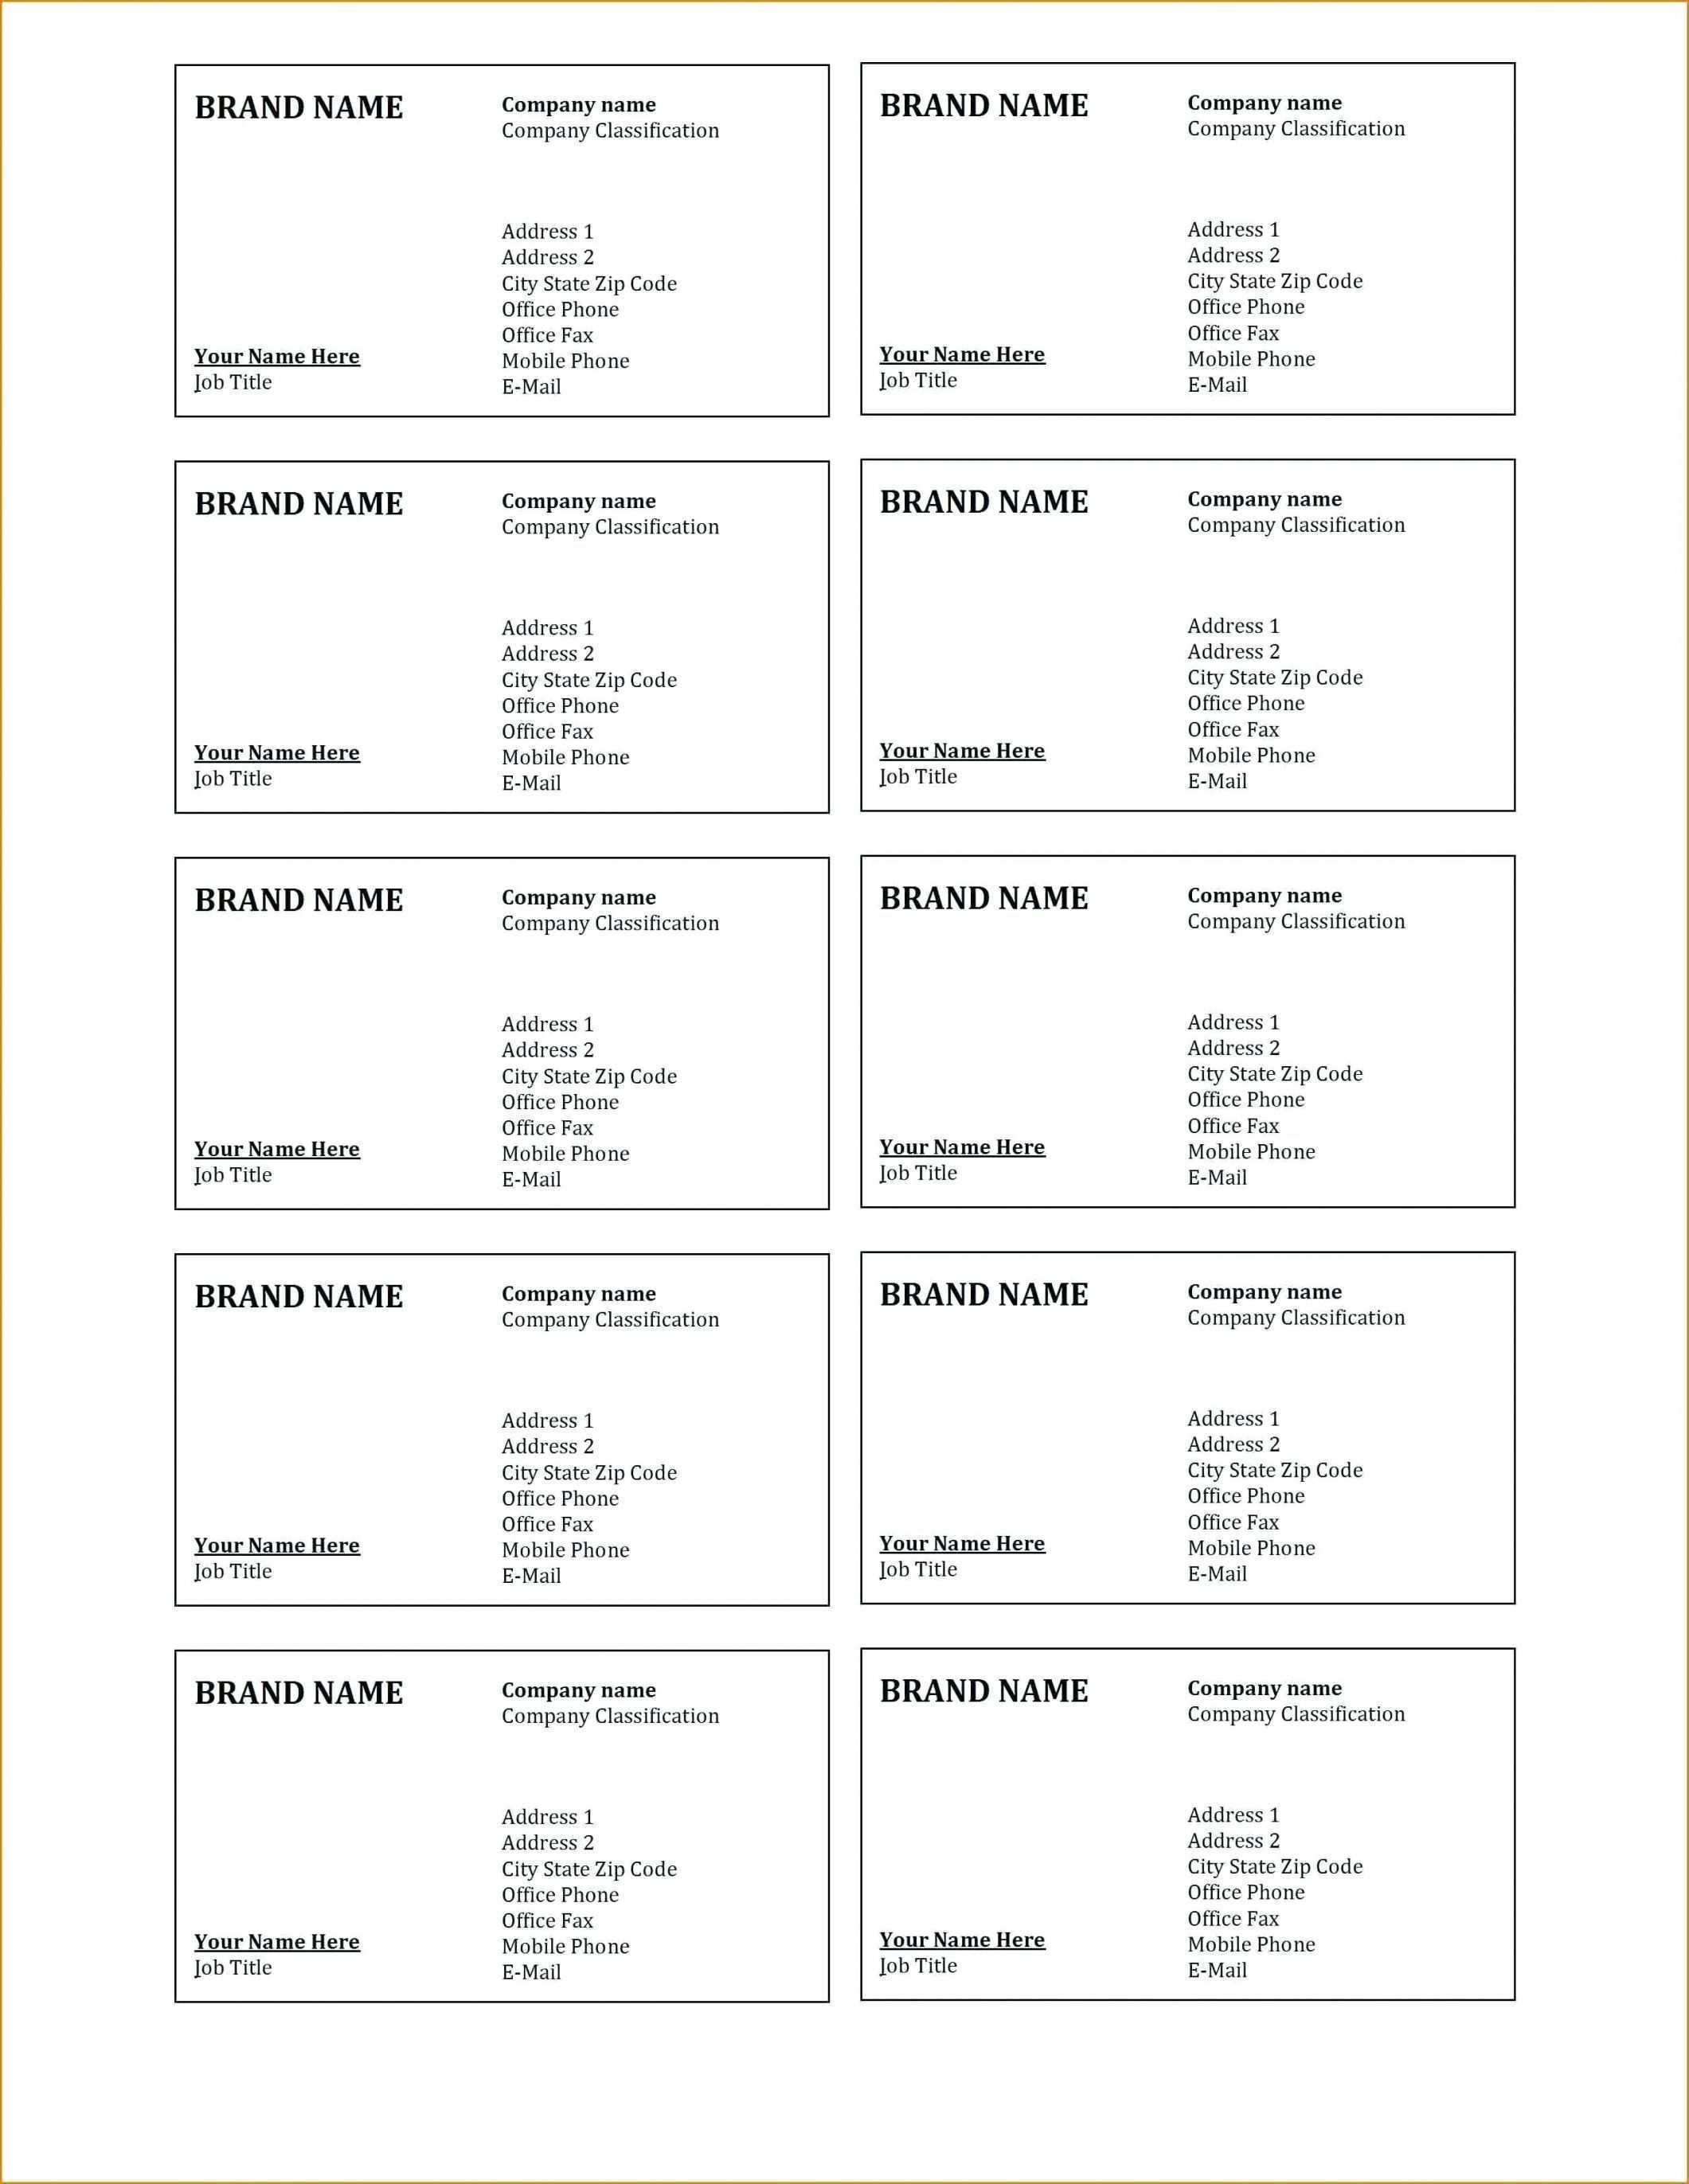 59 Free Business Card Template 8373 Layouts by Business Card Template 8373